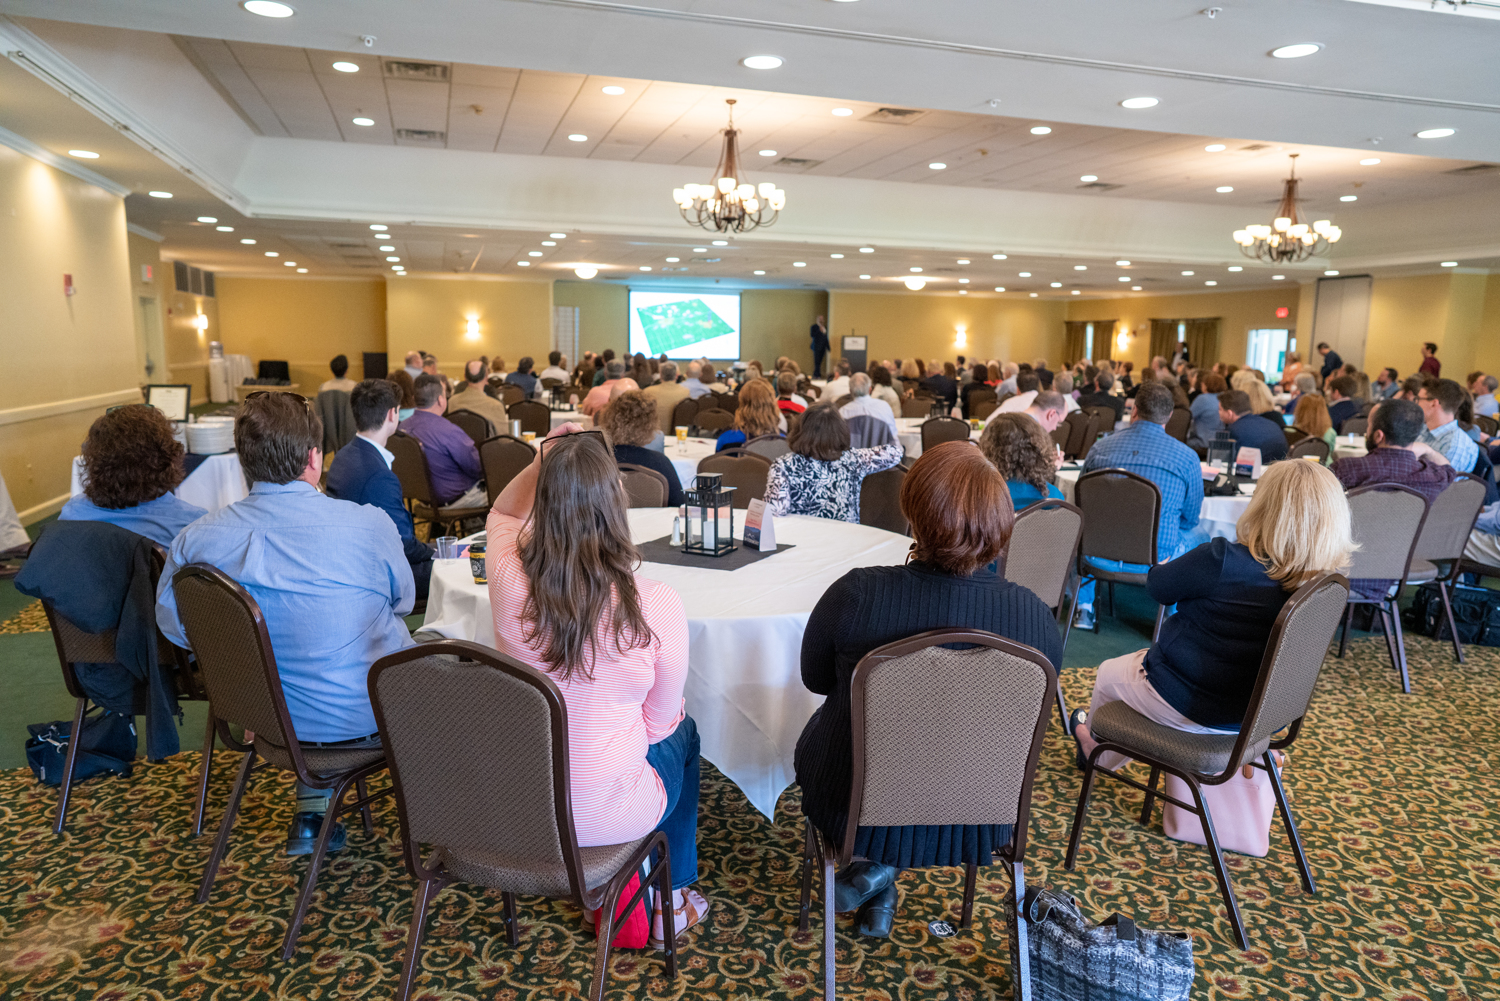 2019 Southern Vermont Economic Summit Keynote Speaker Joseph Minicozzi Delivered His Presentation On Grand List Valuation And Infrastructure ROI To A Packed House.